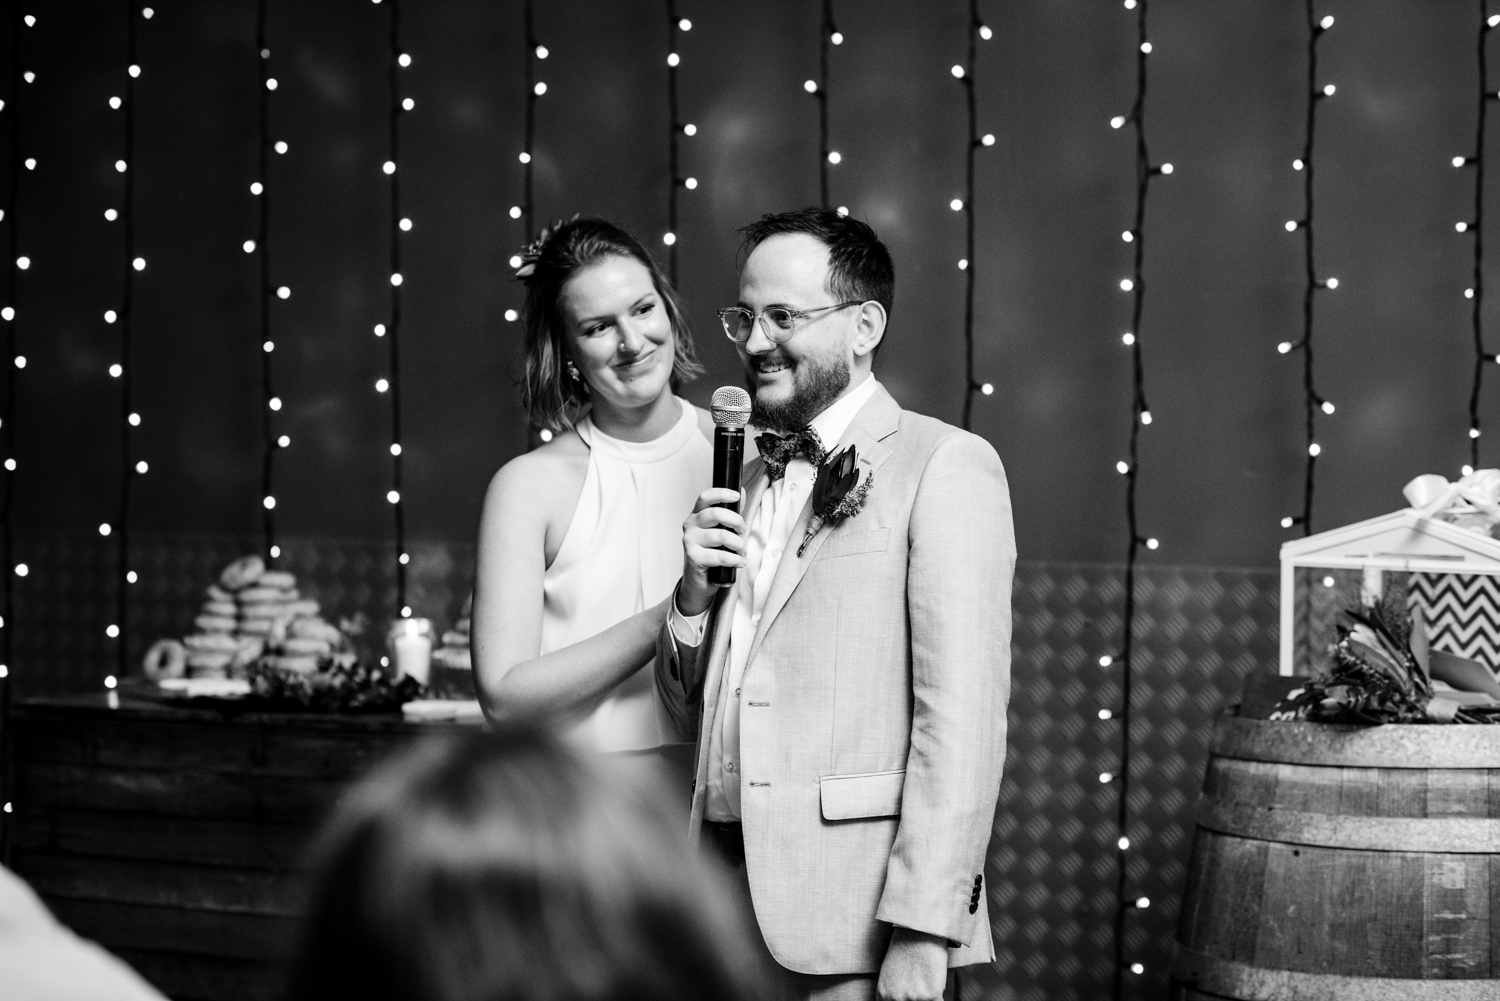 Brisbane Wedding Photographer | Tweed Coast Elopement Photography-110.jpg